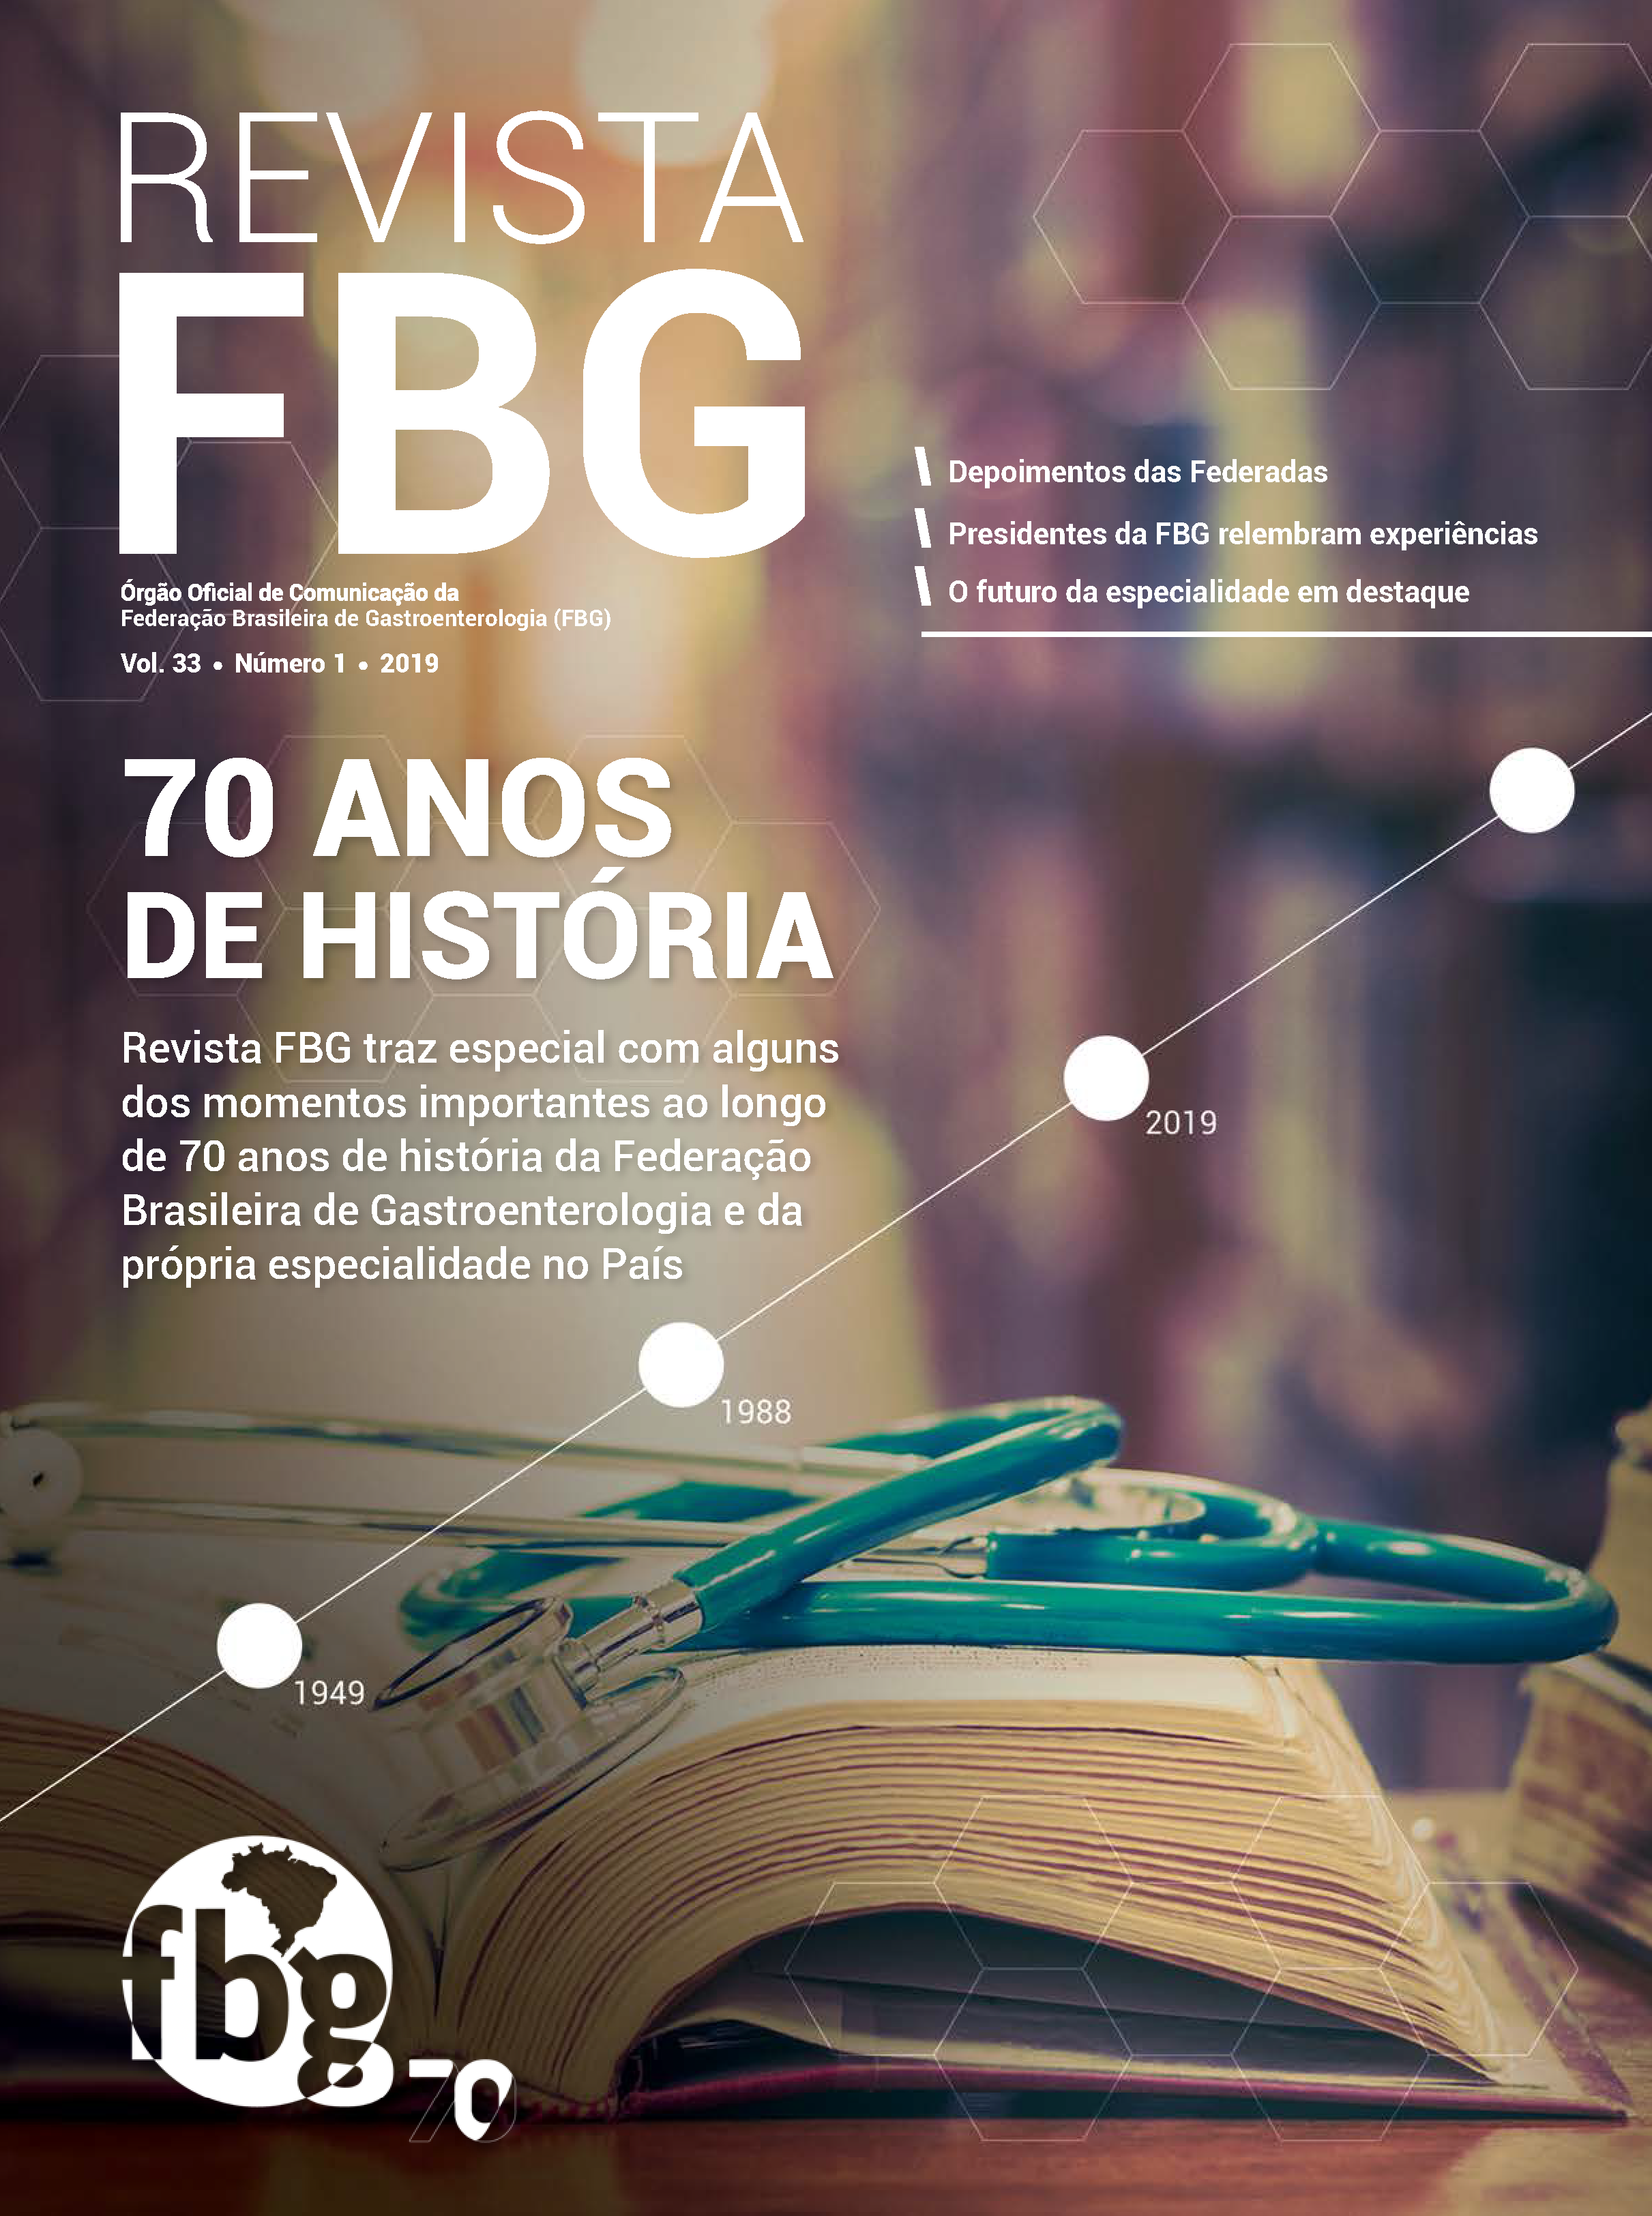 Revista FBG Vol. 33 Nº 1 - 2019